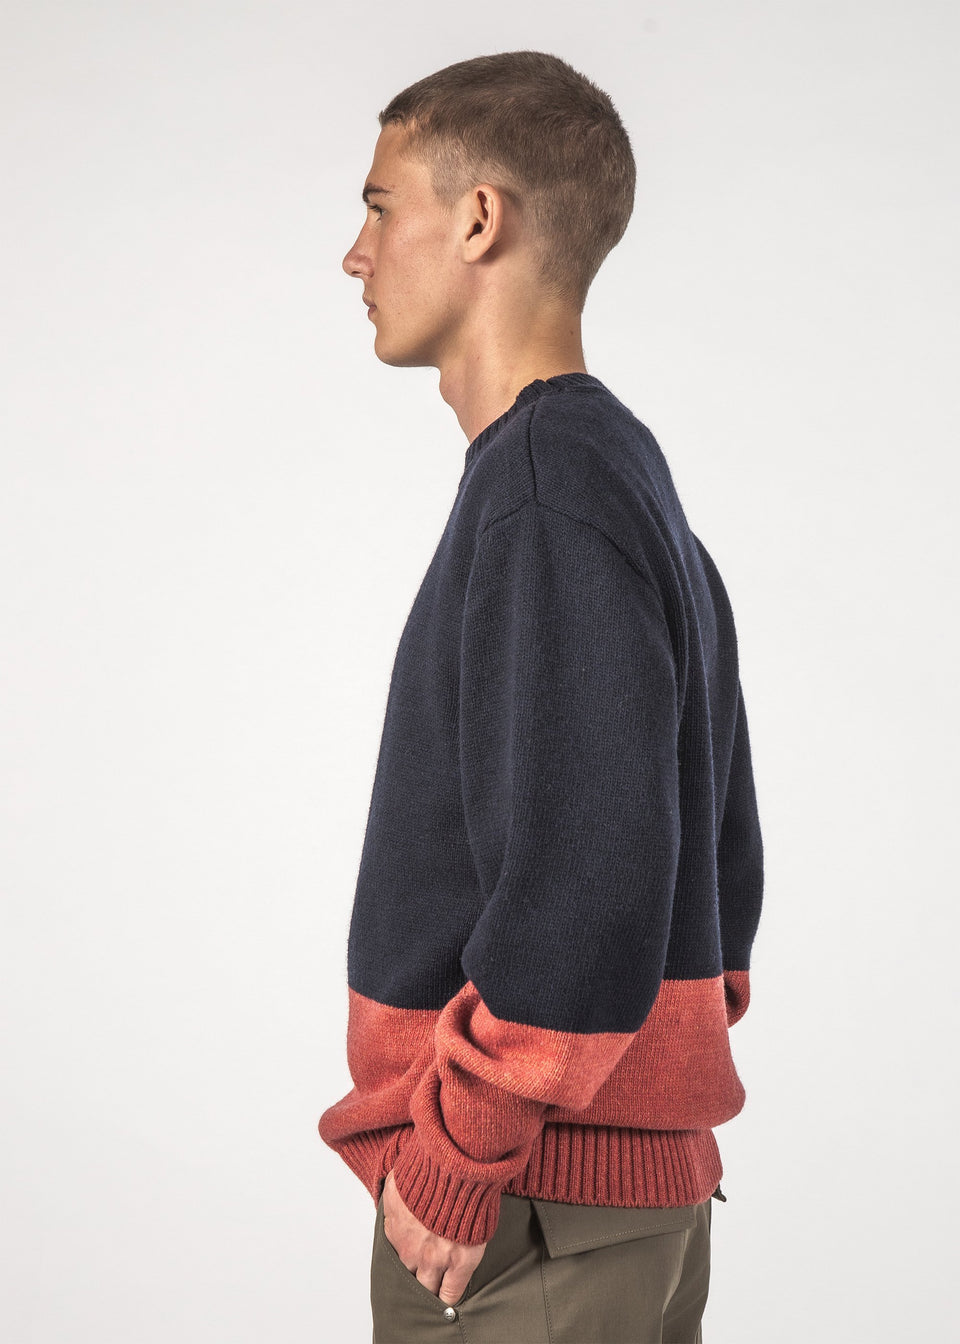 Thing Thing Wool Hall Sweater Navy/Rust - Stencil